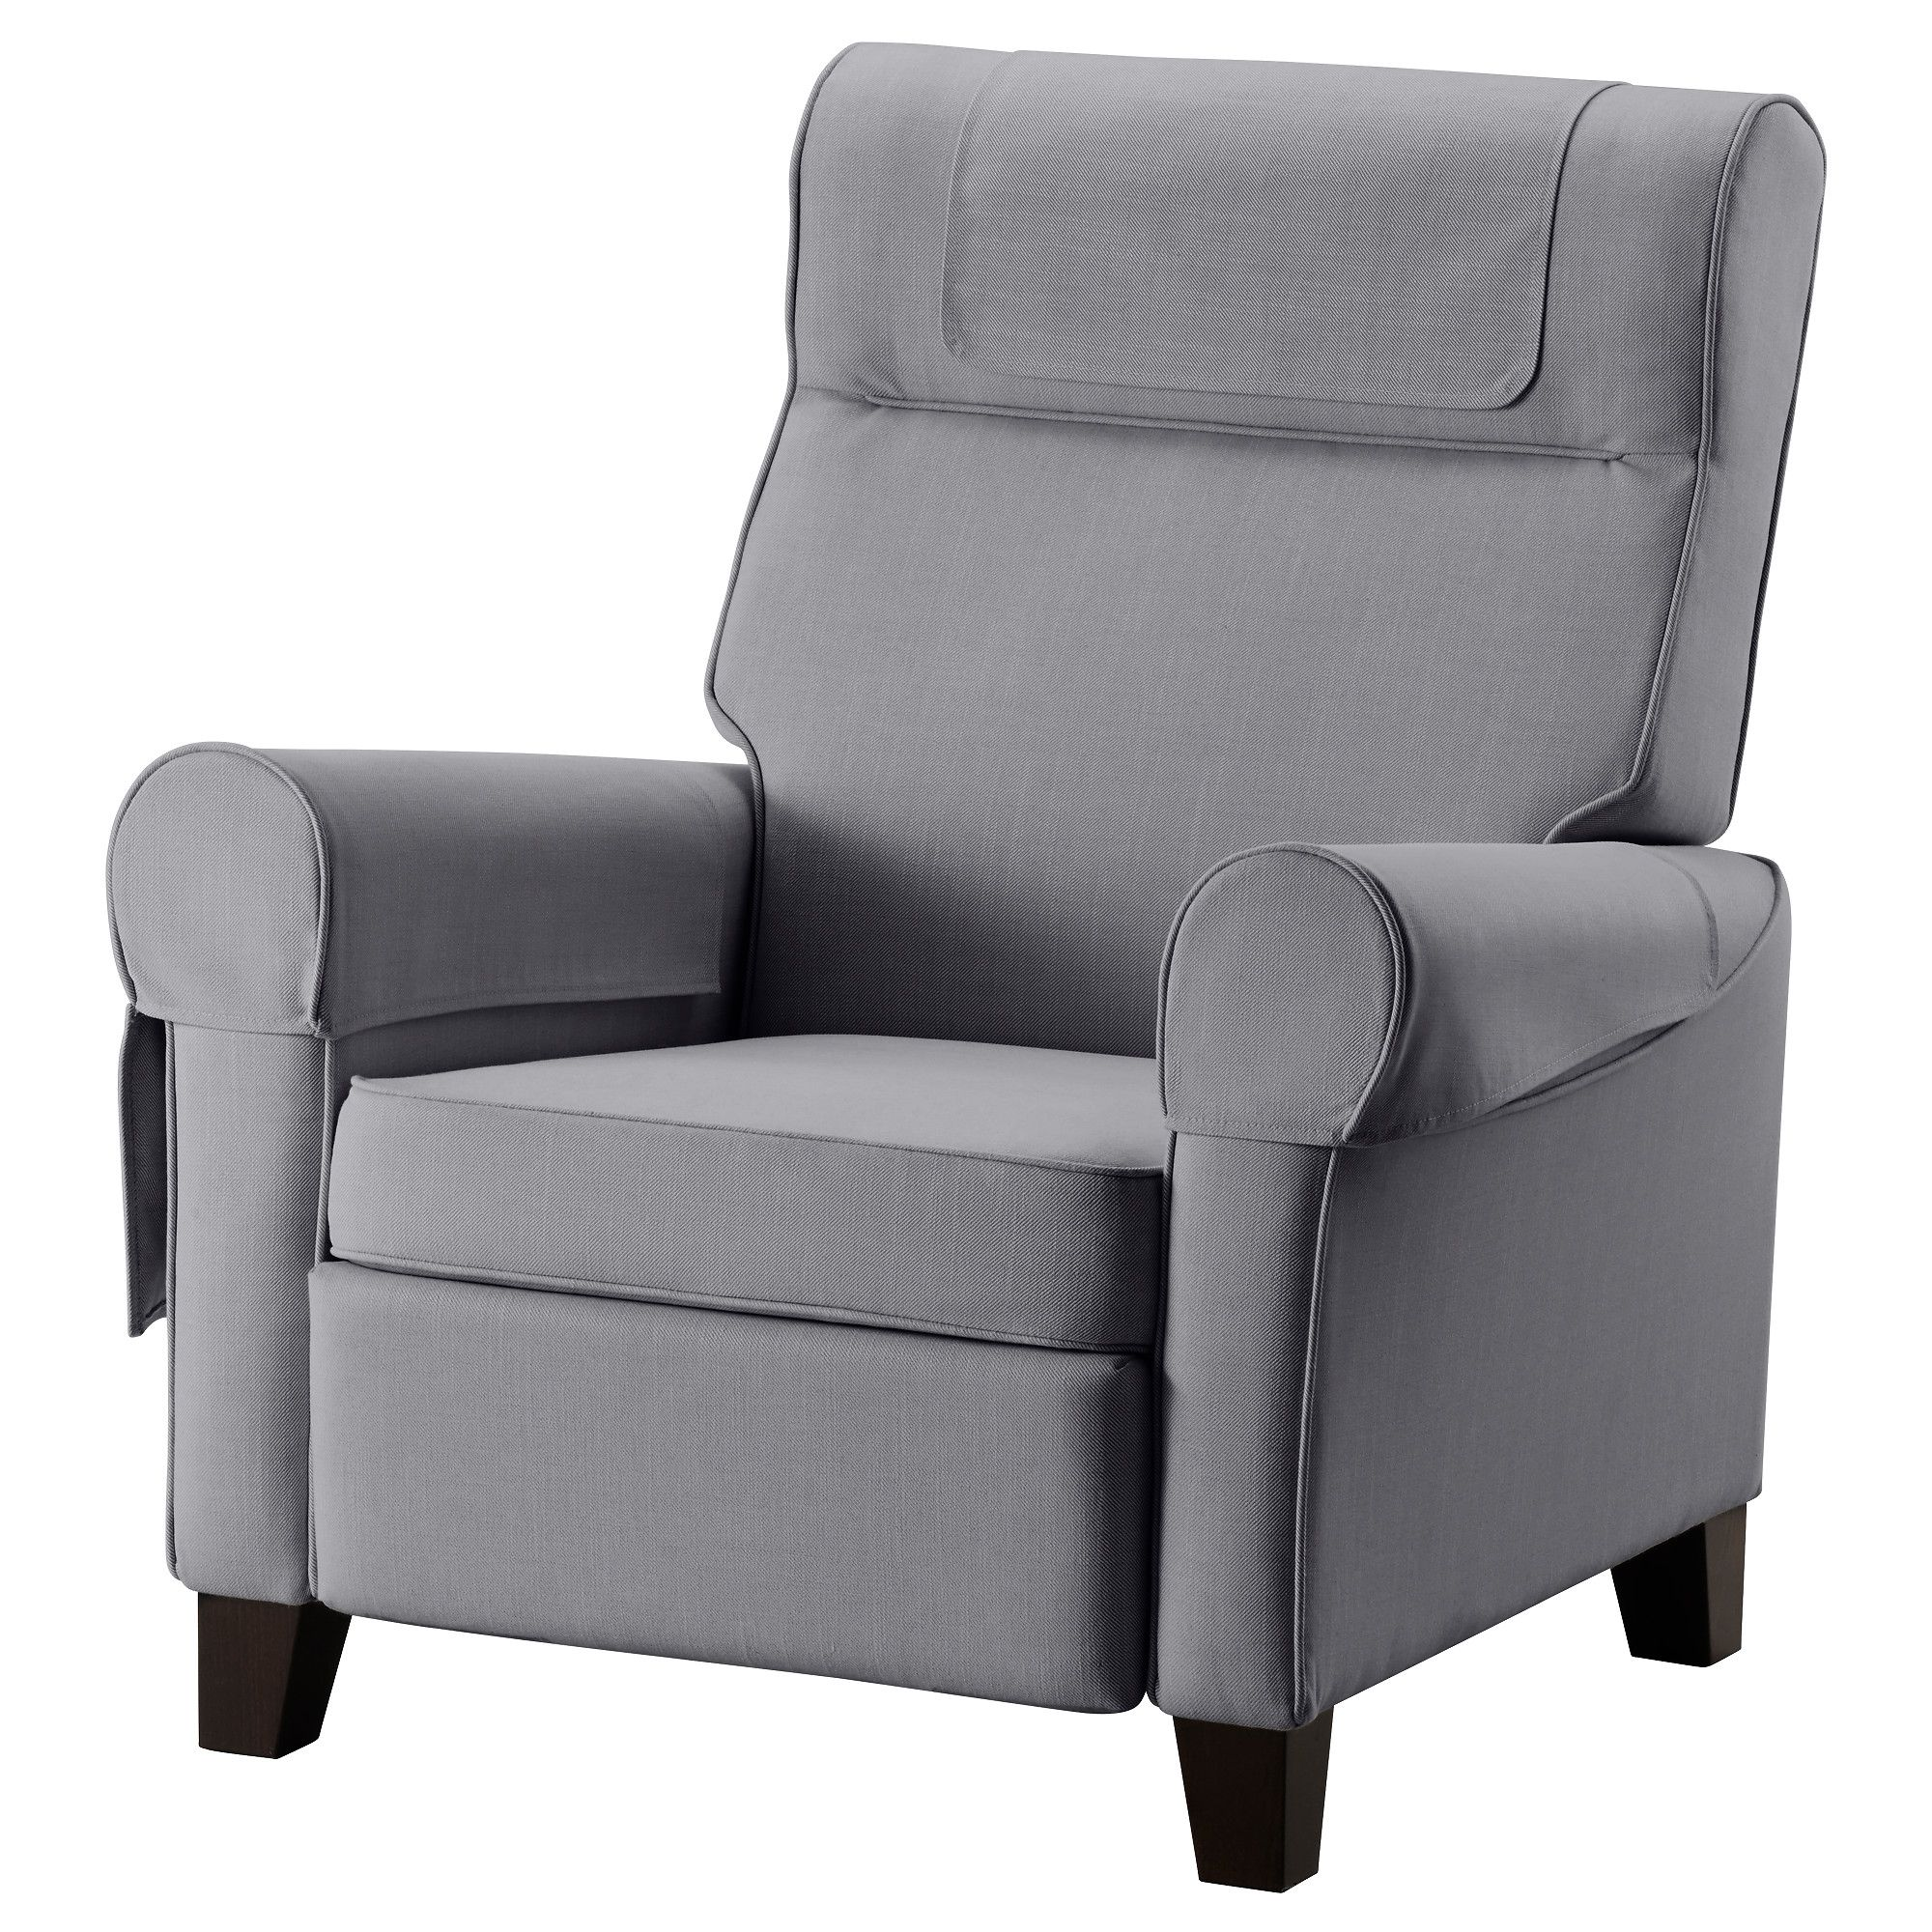 Tv Chair Ikea Long Lounge For Living Room Pin By Besthomezone On Affordable Furniture Home Set Browse Fabric Armchairs At Ireland From Rocking Chairs To Our Favourite Poang Armchair Explore Full Range Of Seating